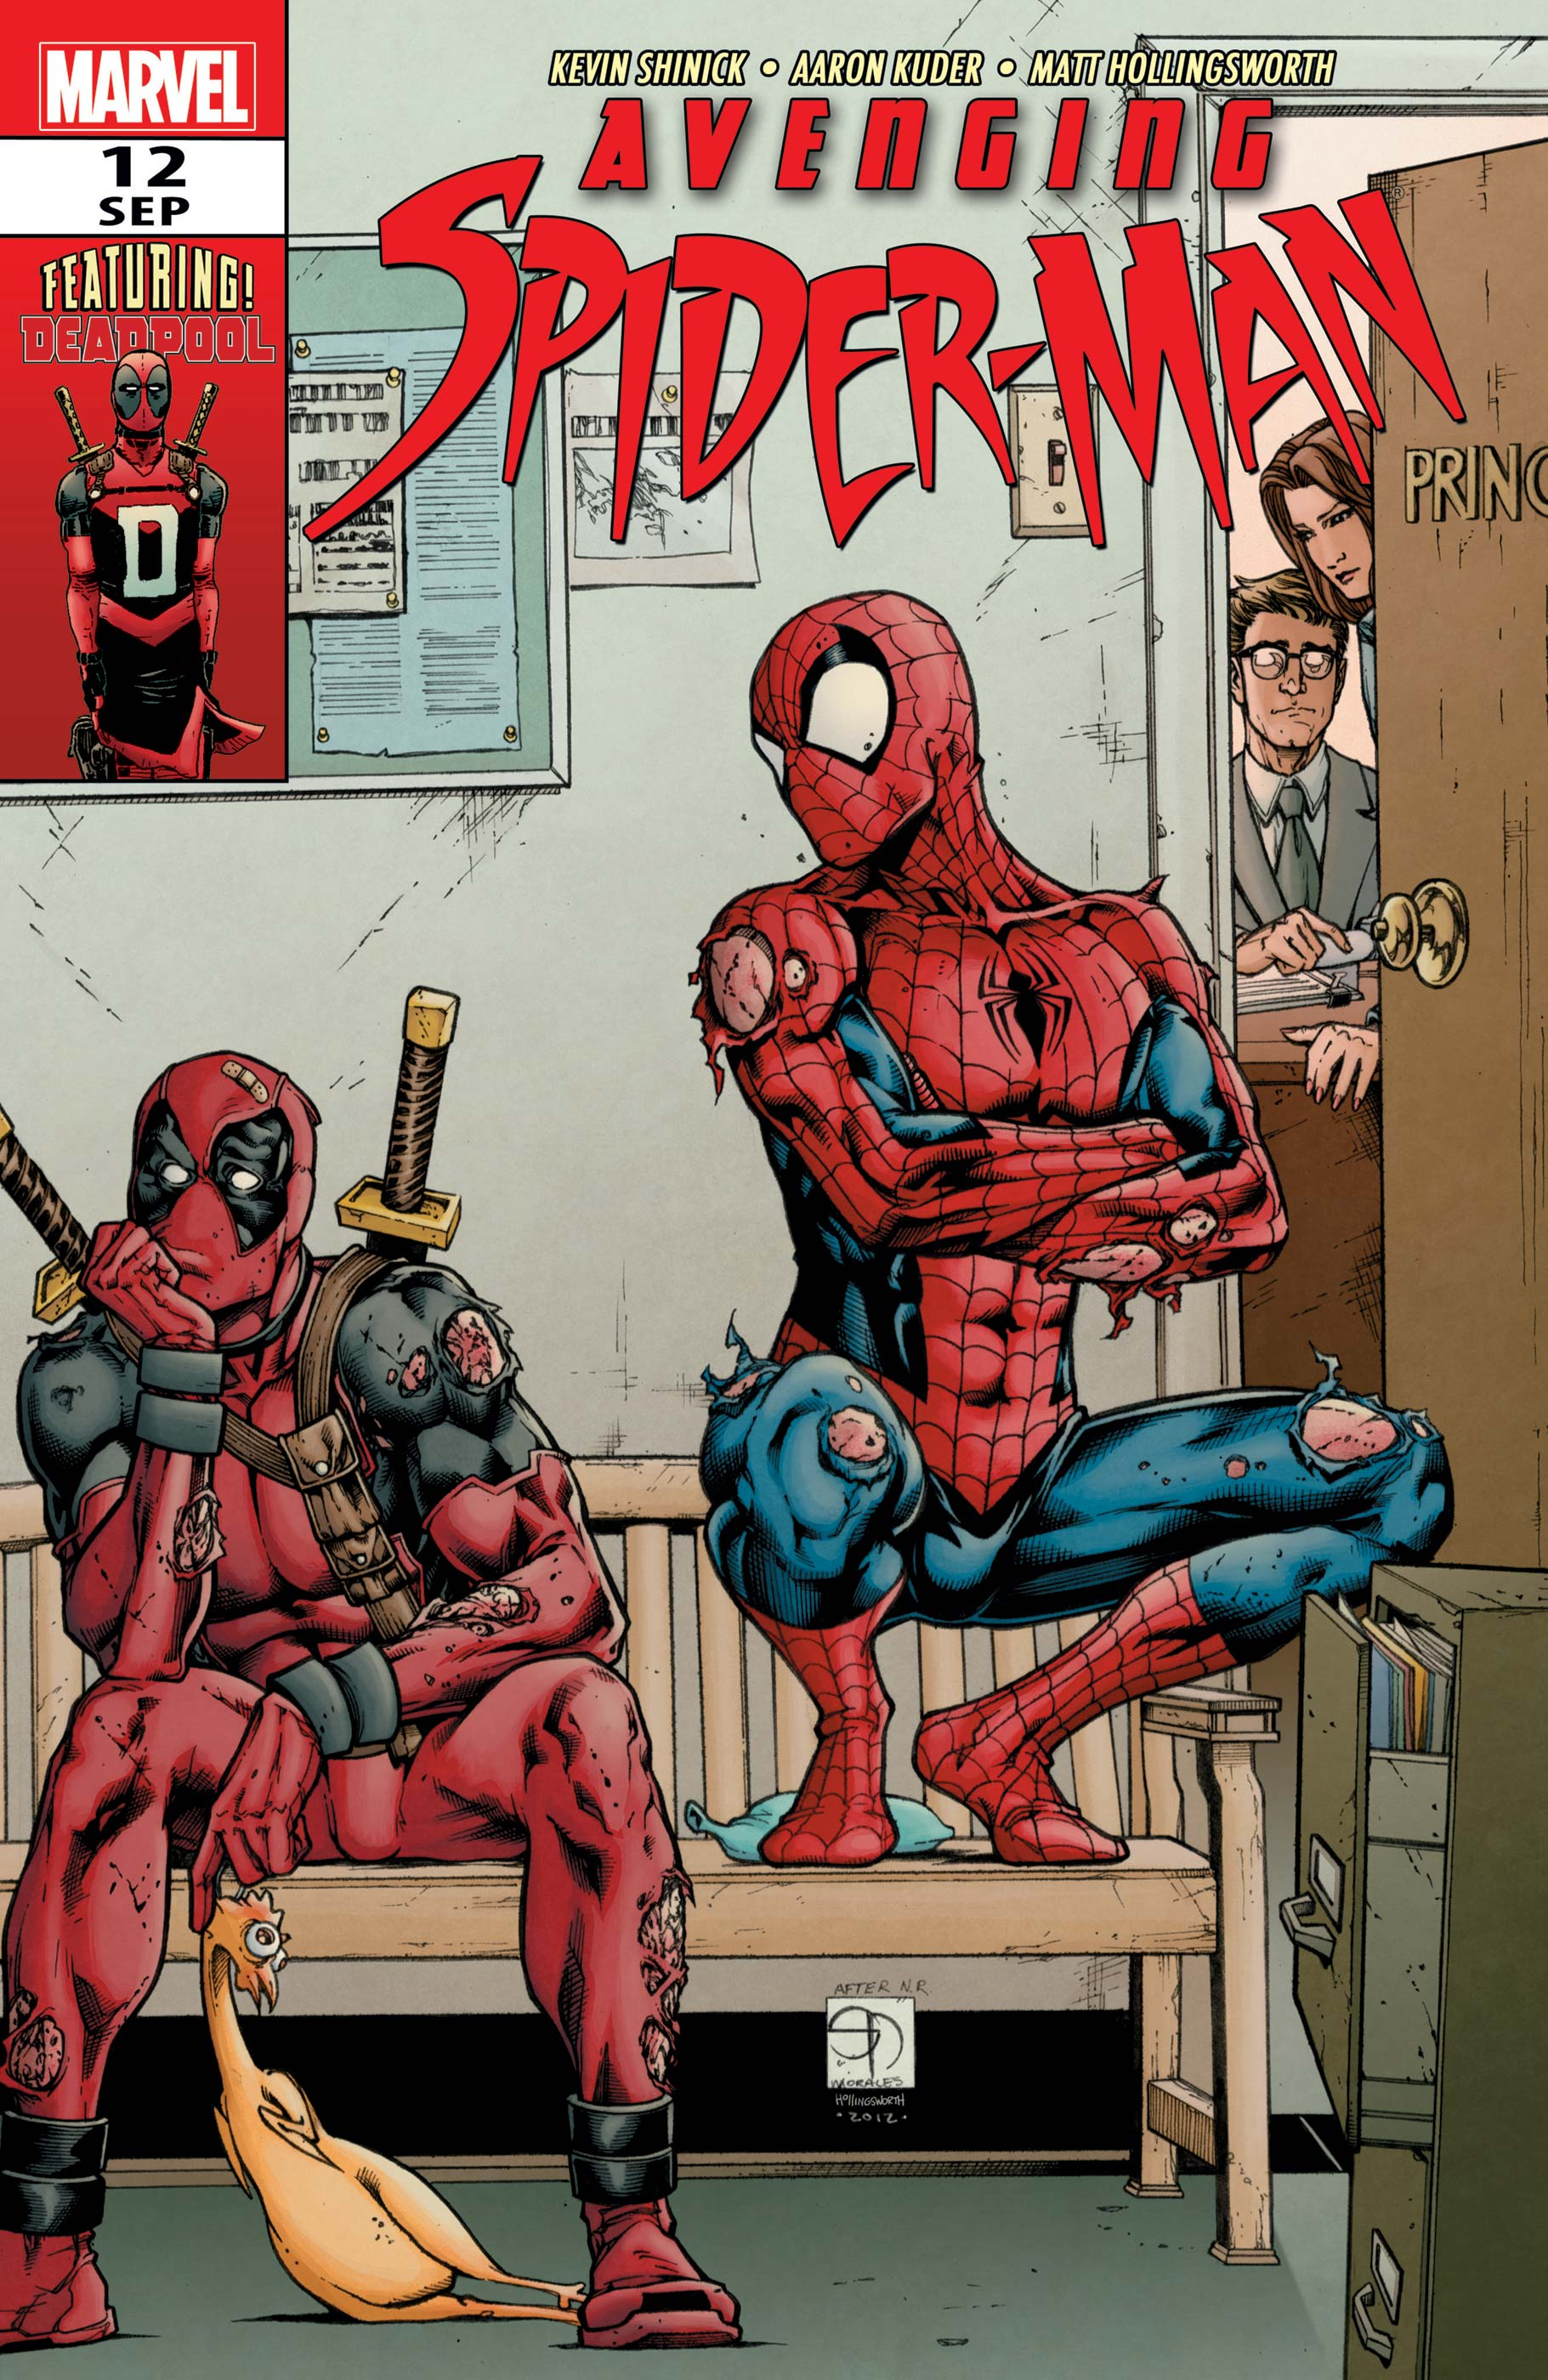 Avenging Spider-Man (2011) #12